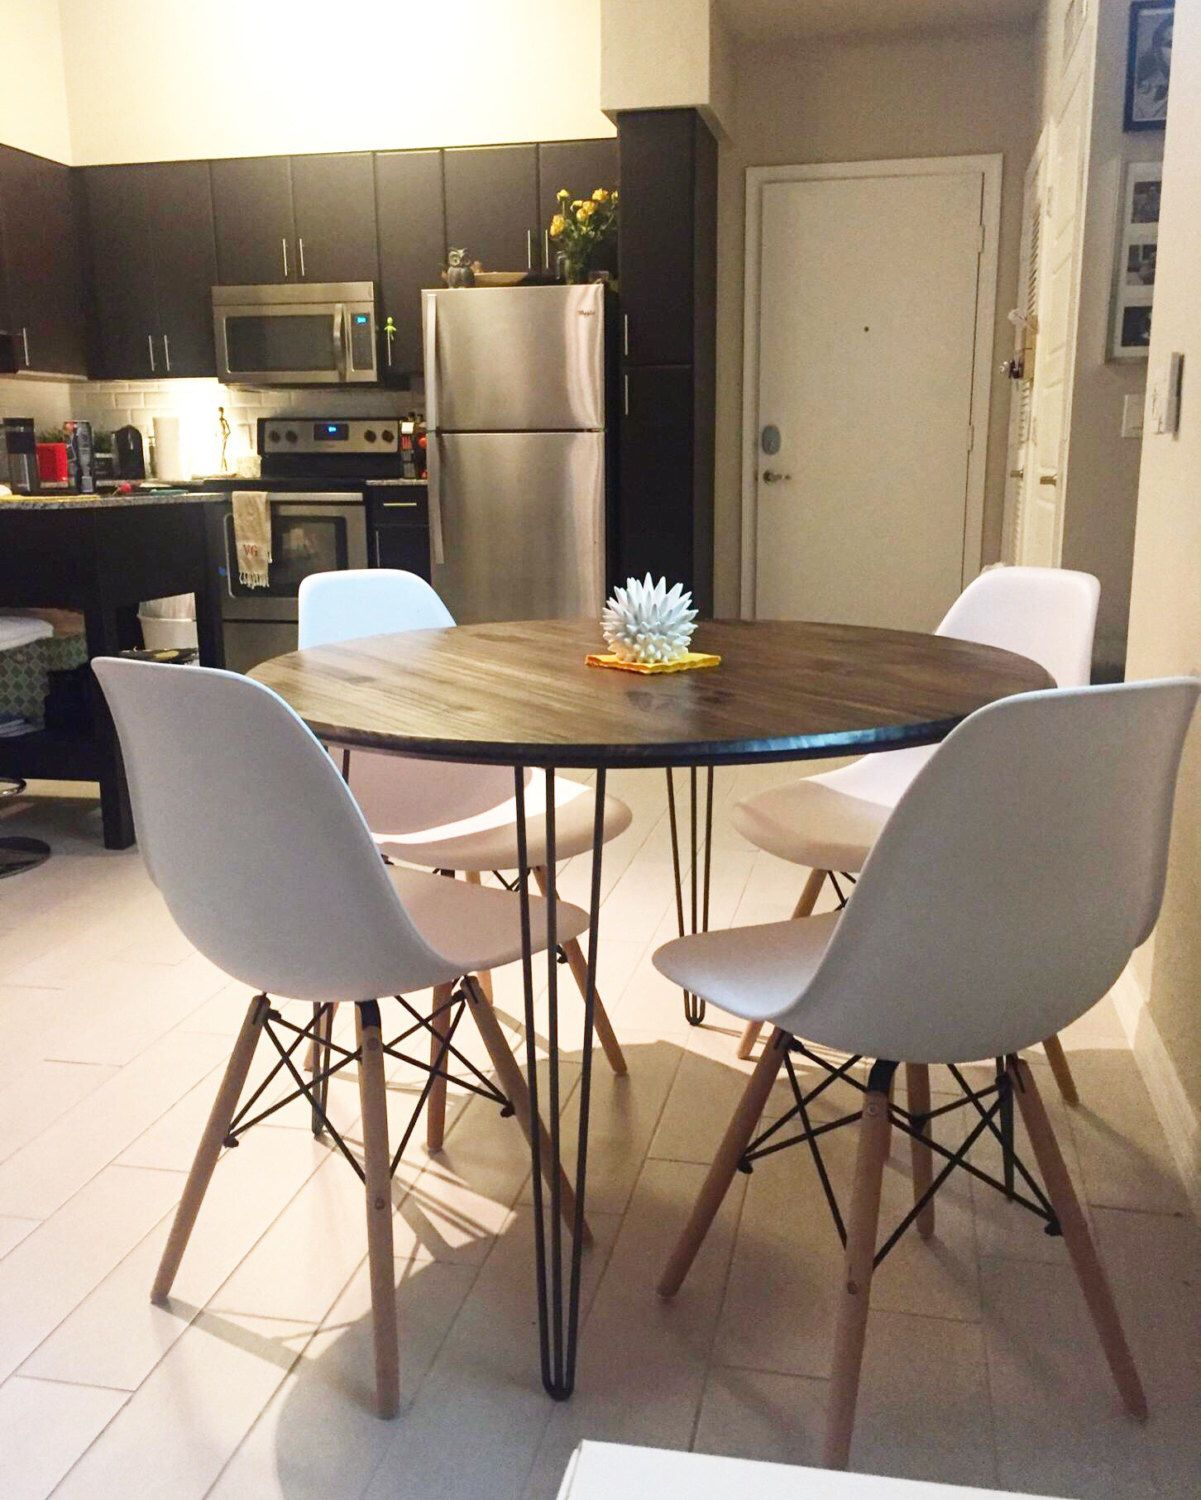 42 Round Industrial Chic Kitchen Table With Handcrafted Wood Top